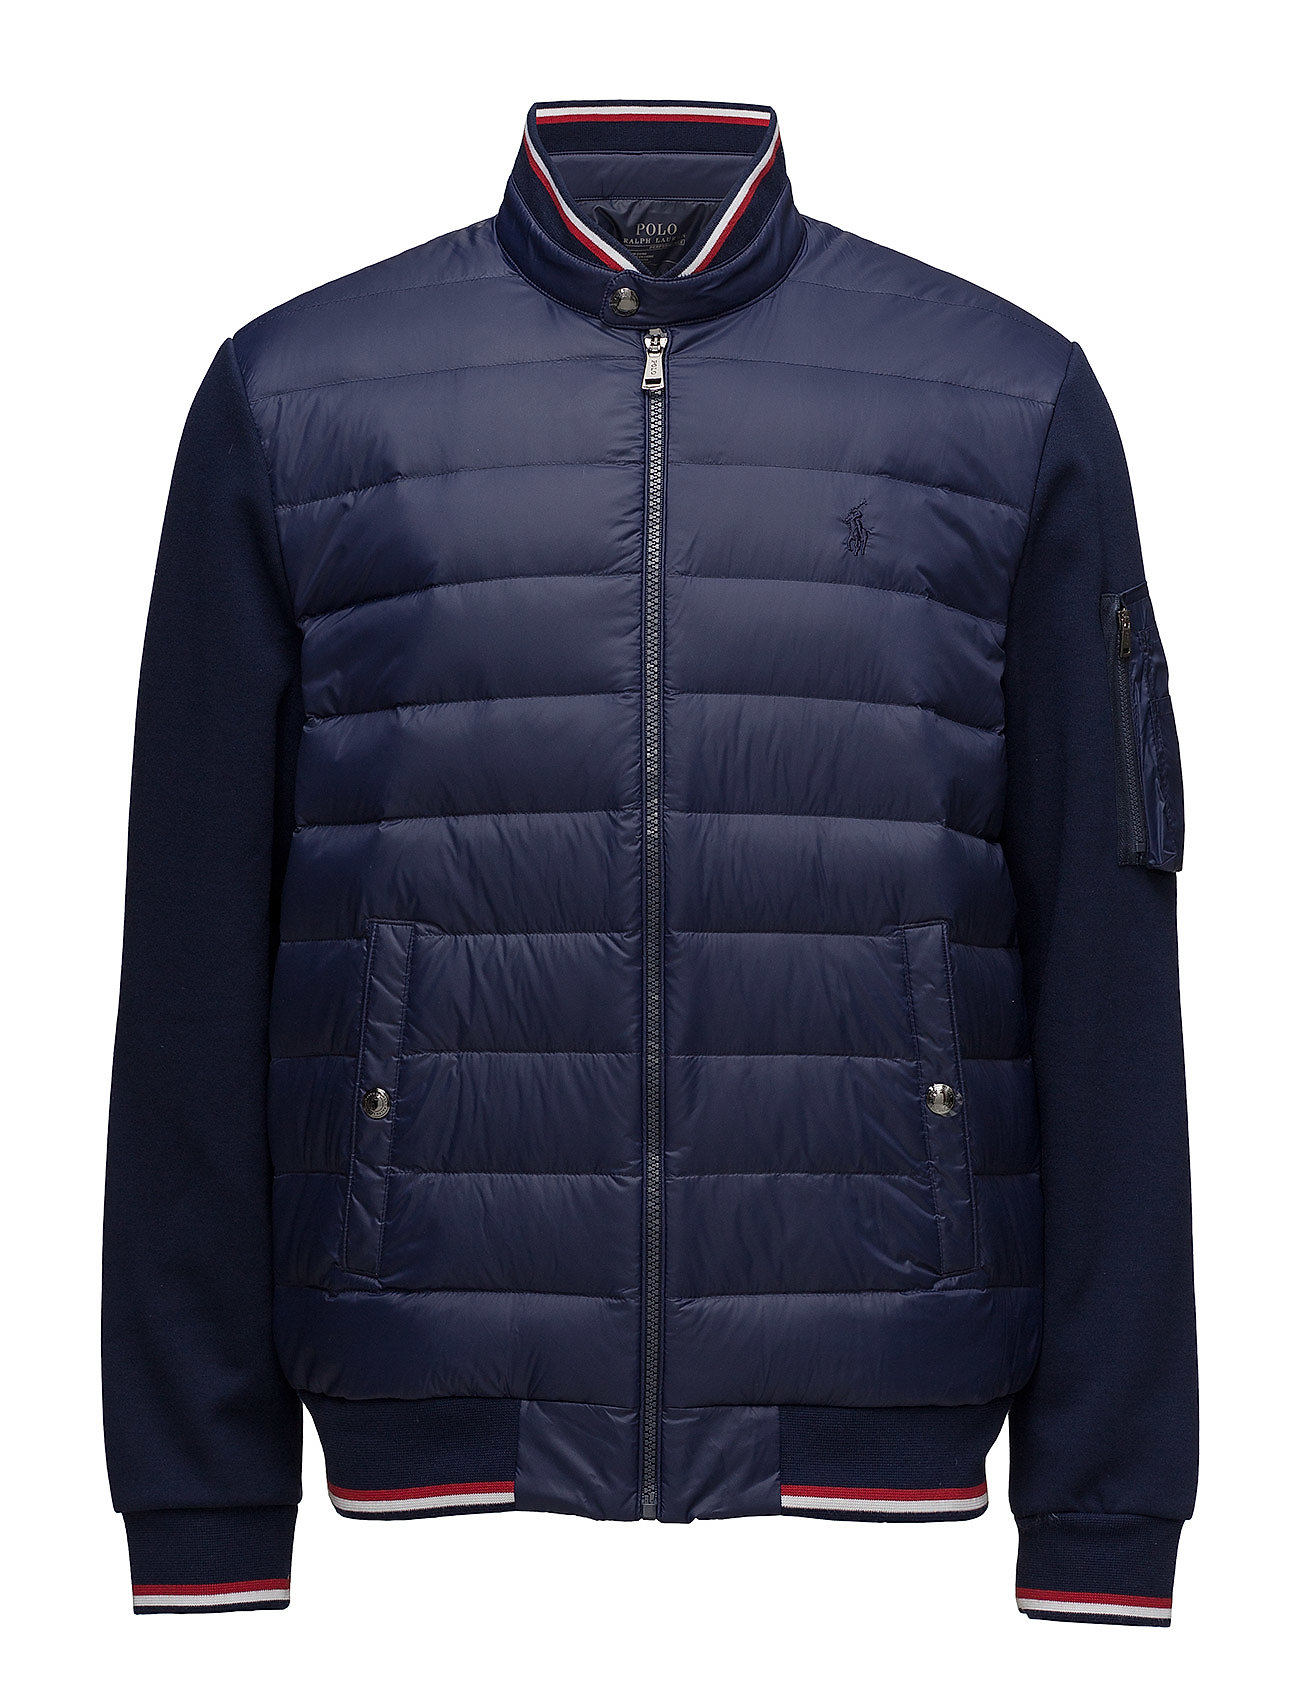 Double Down knit NavyPolo panel Jacketfrench Ralph Lauren wOPknX80